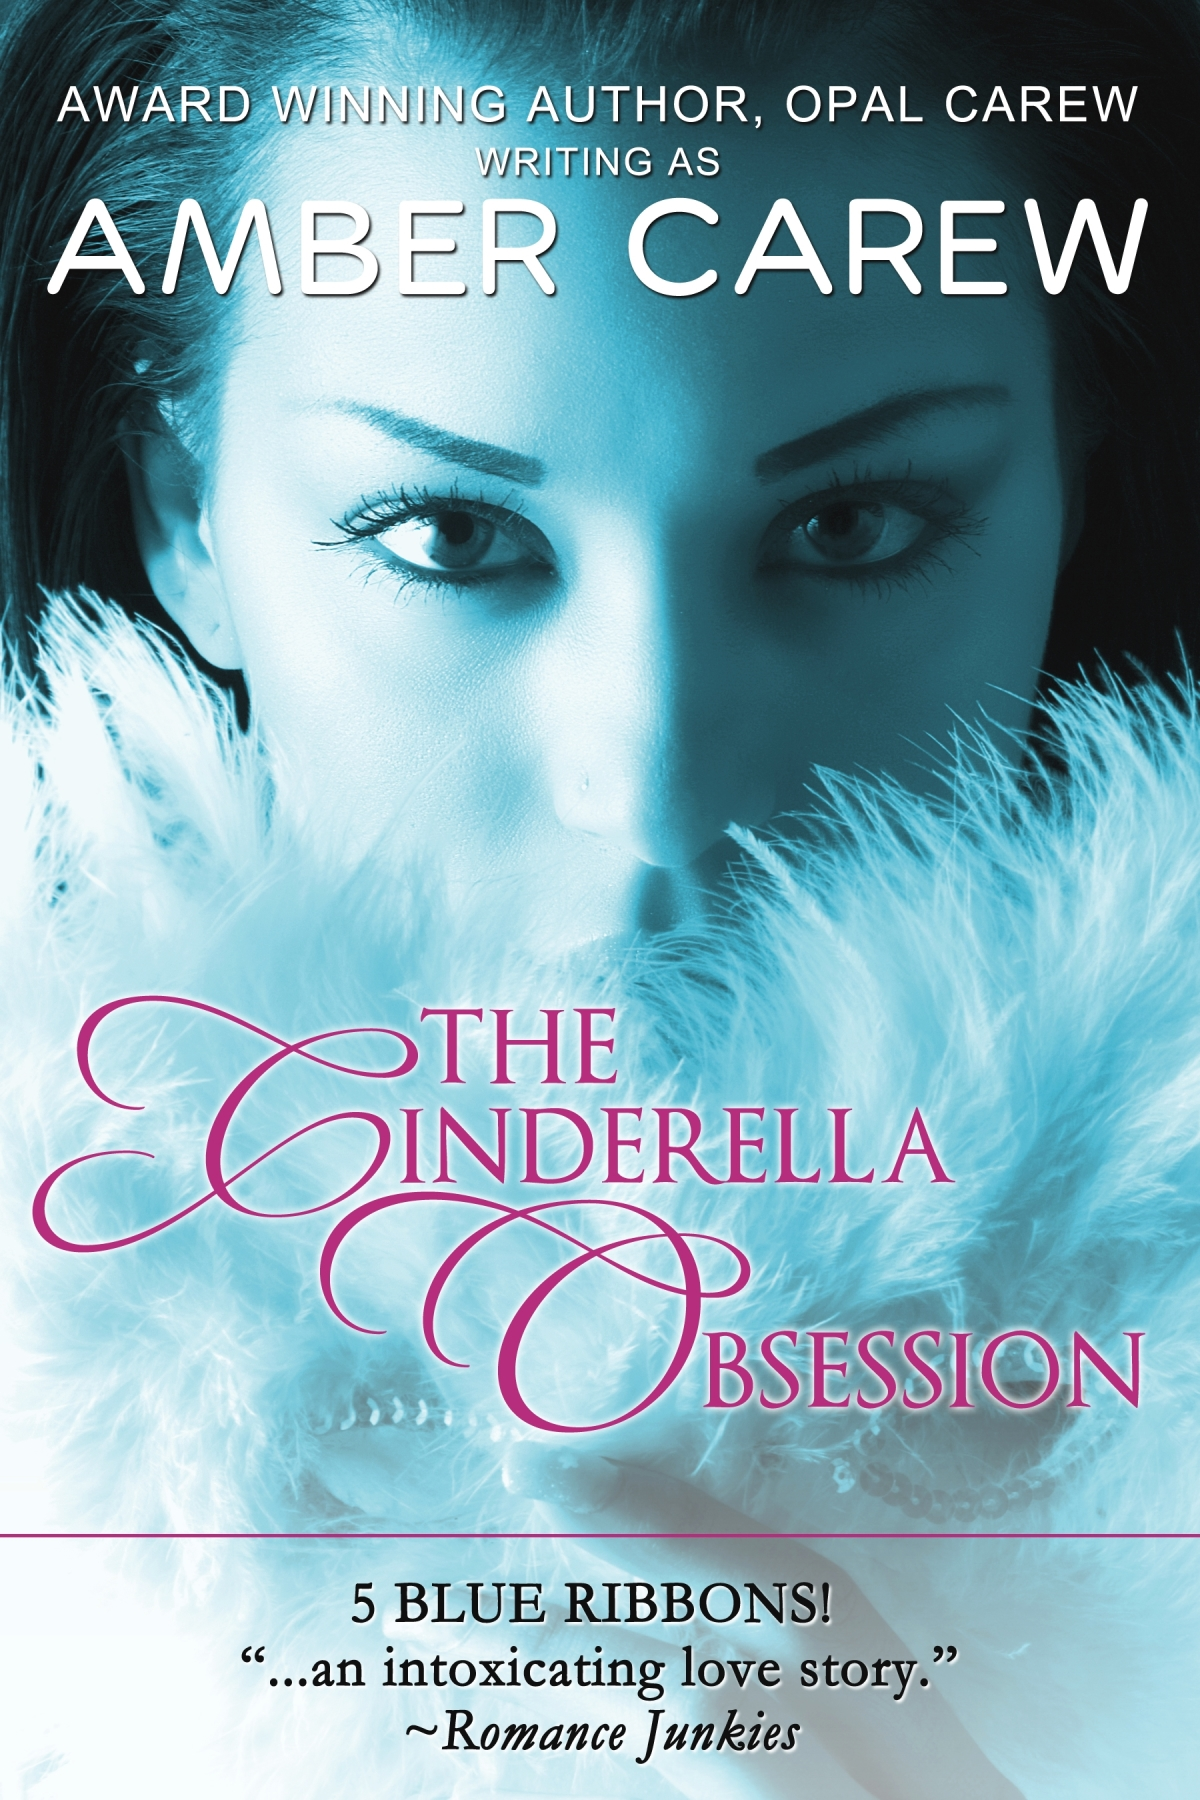 Opal Carew  Amber Carew - The Cinderella Obsession (Contemporary Fairytale Romance)